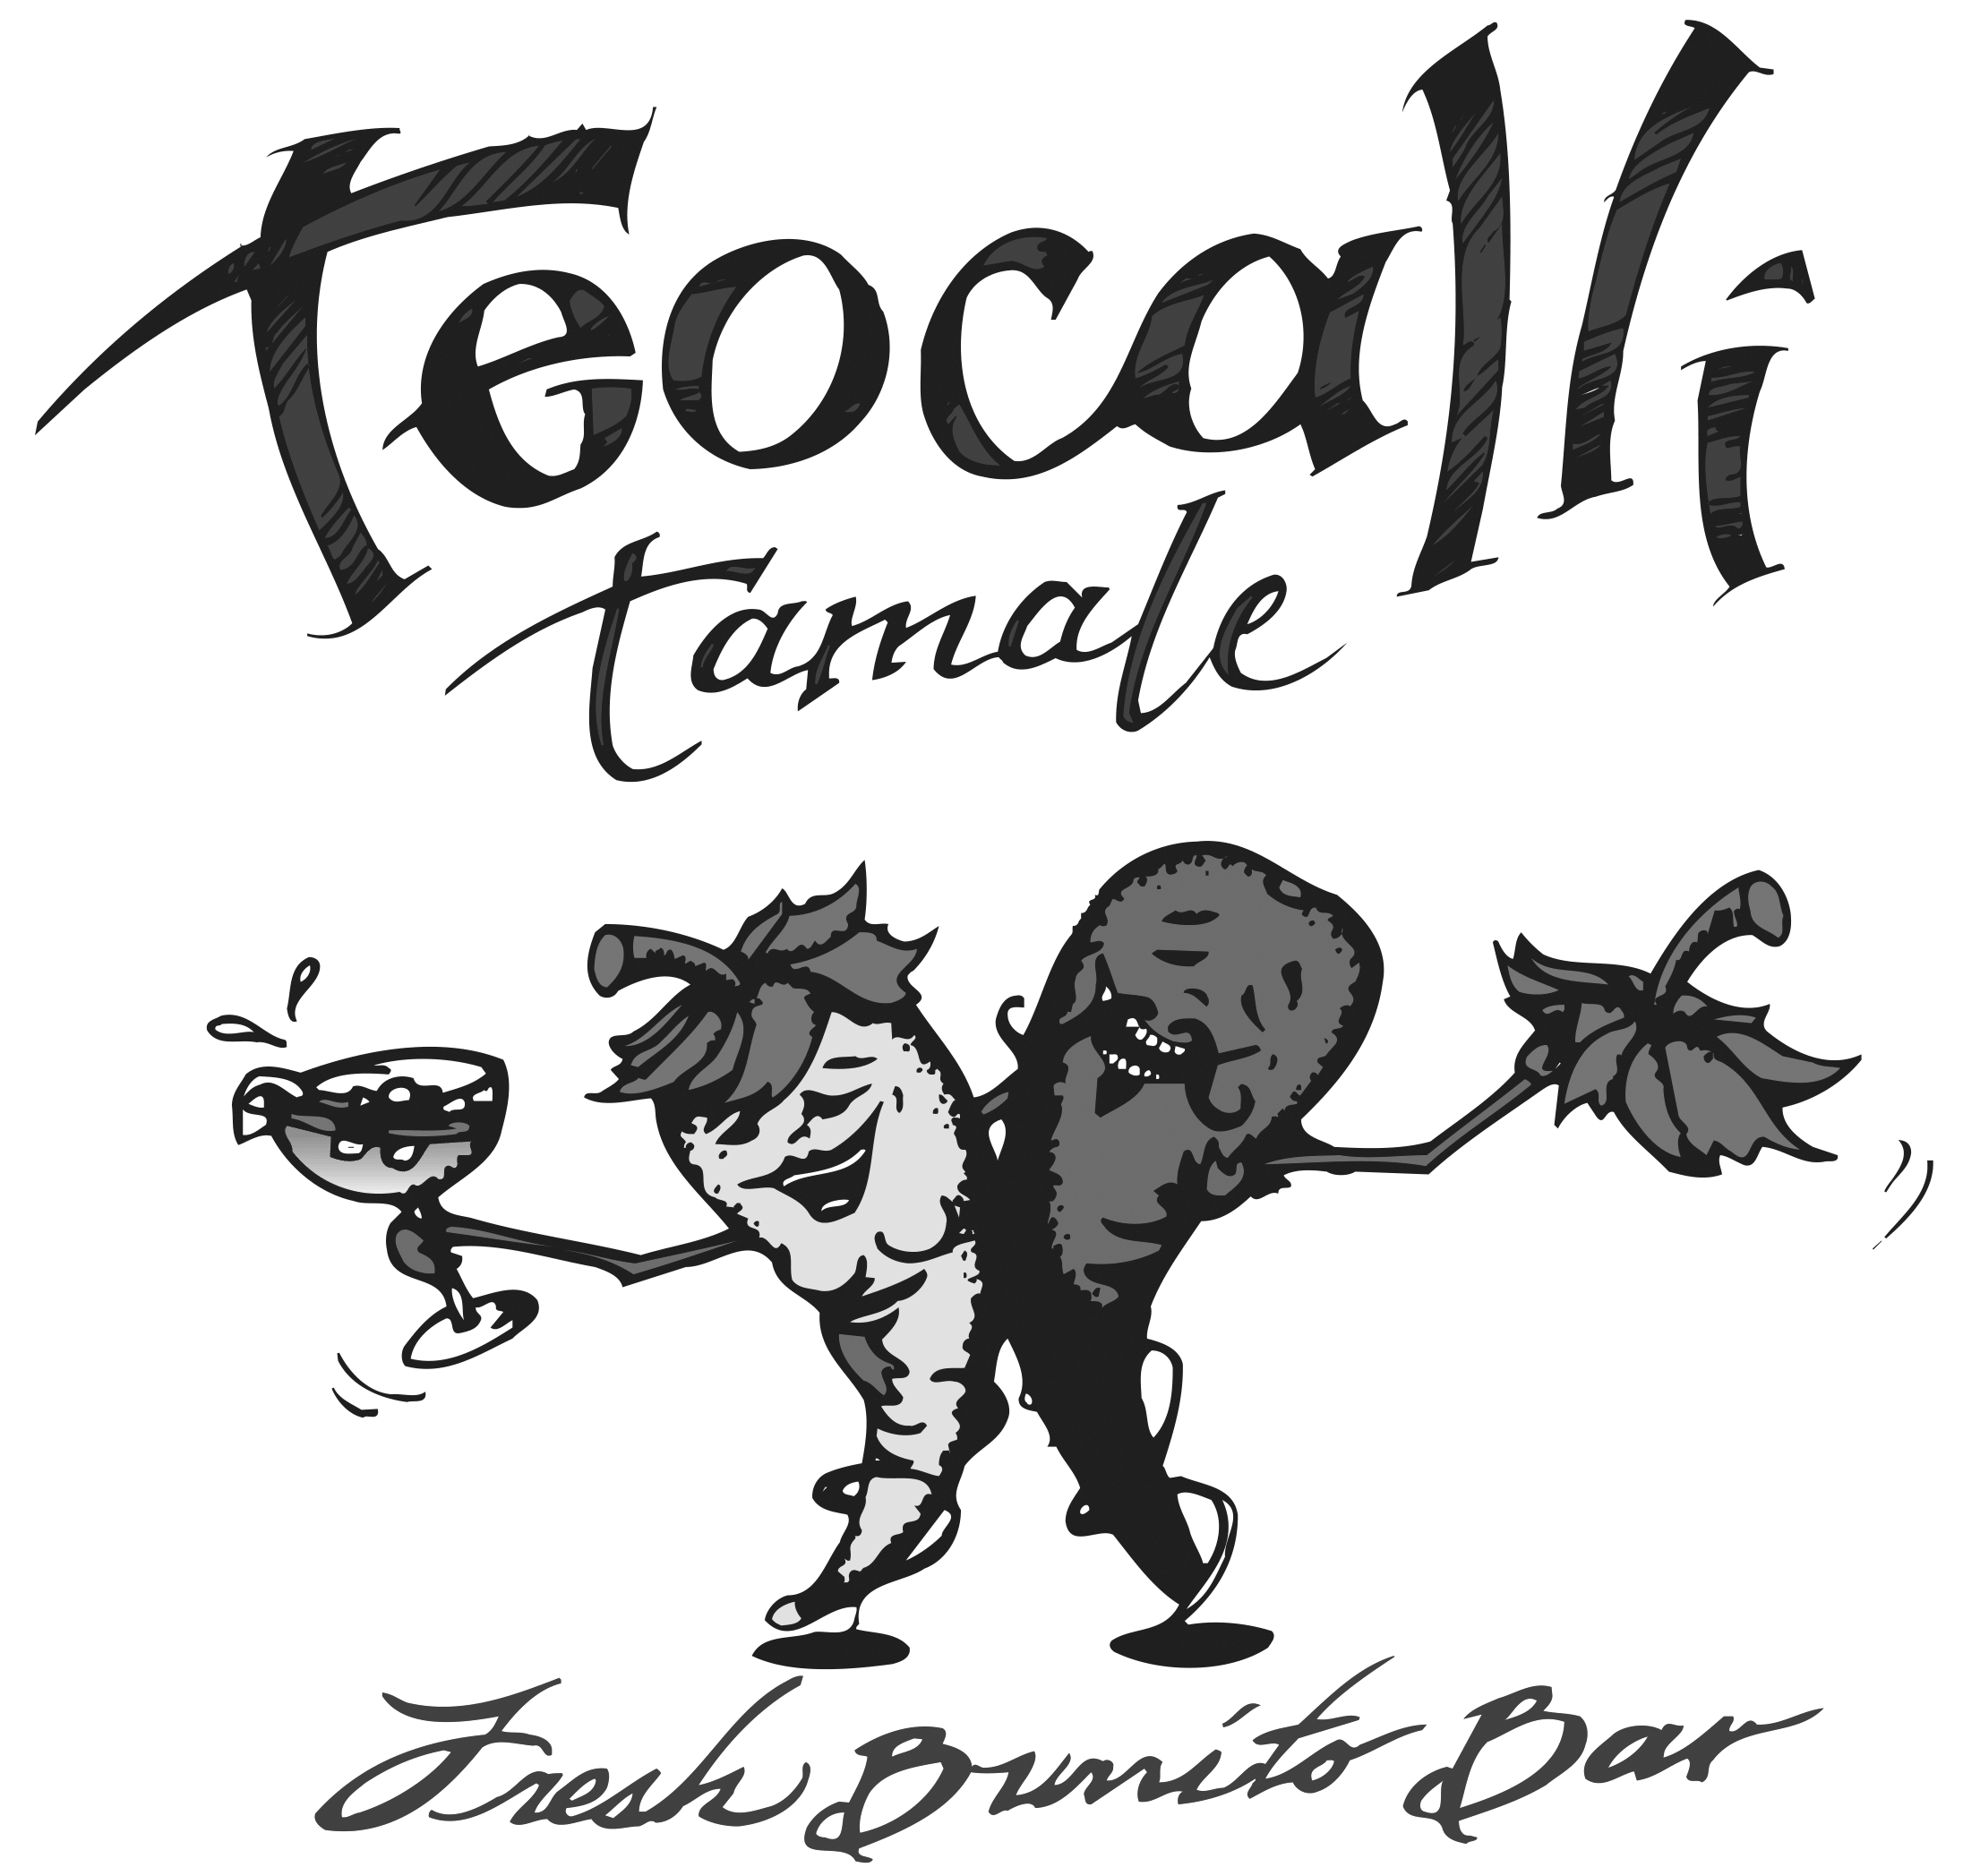 Teocalli Tamale